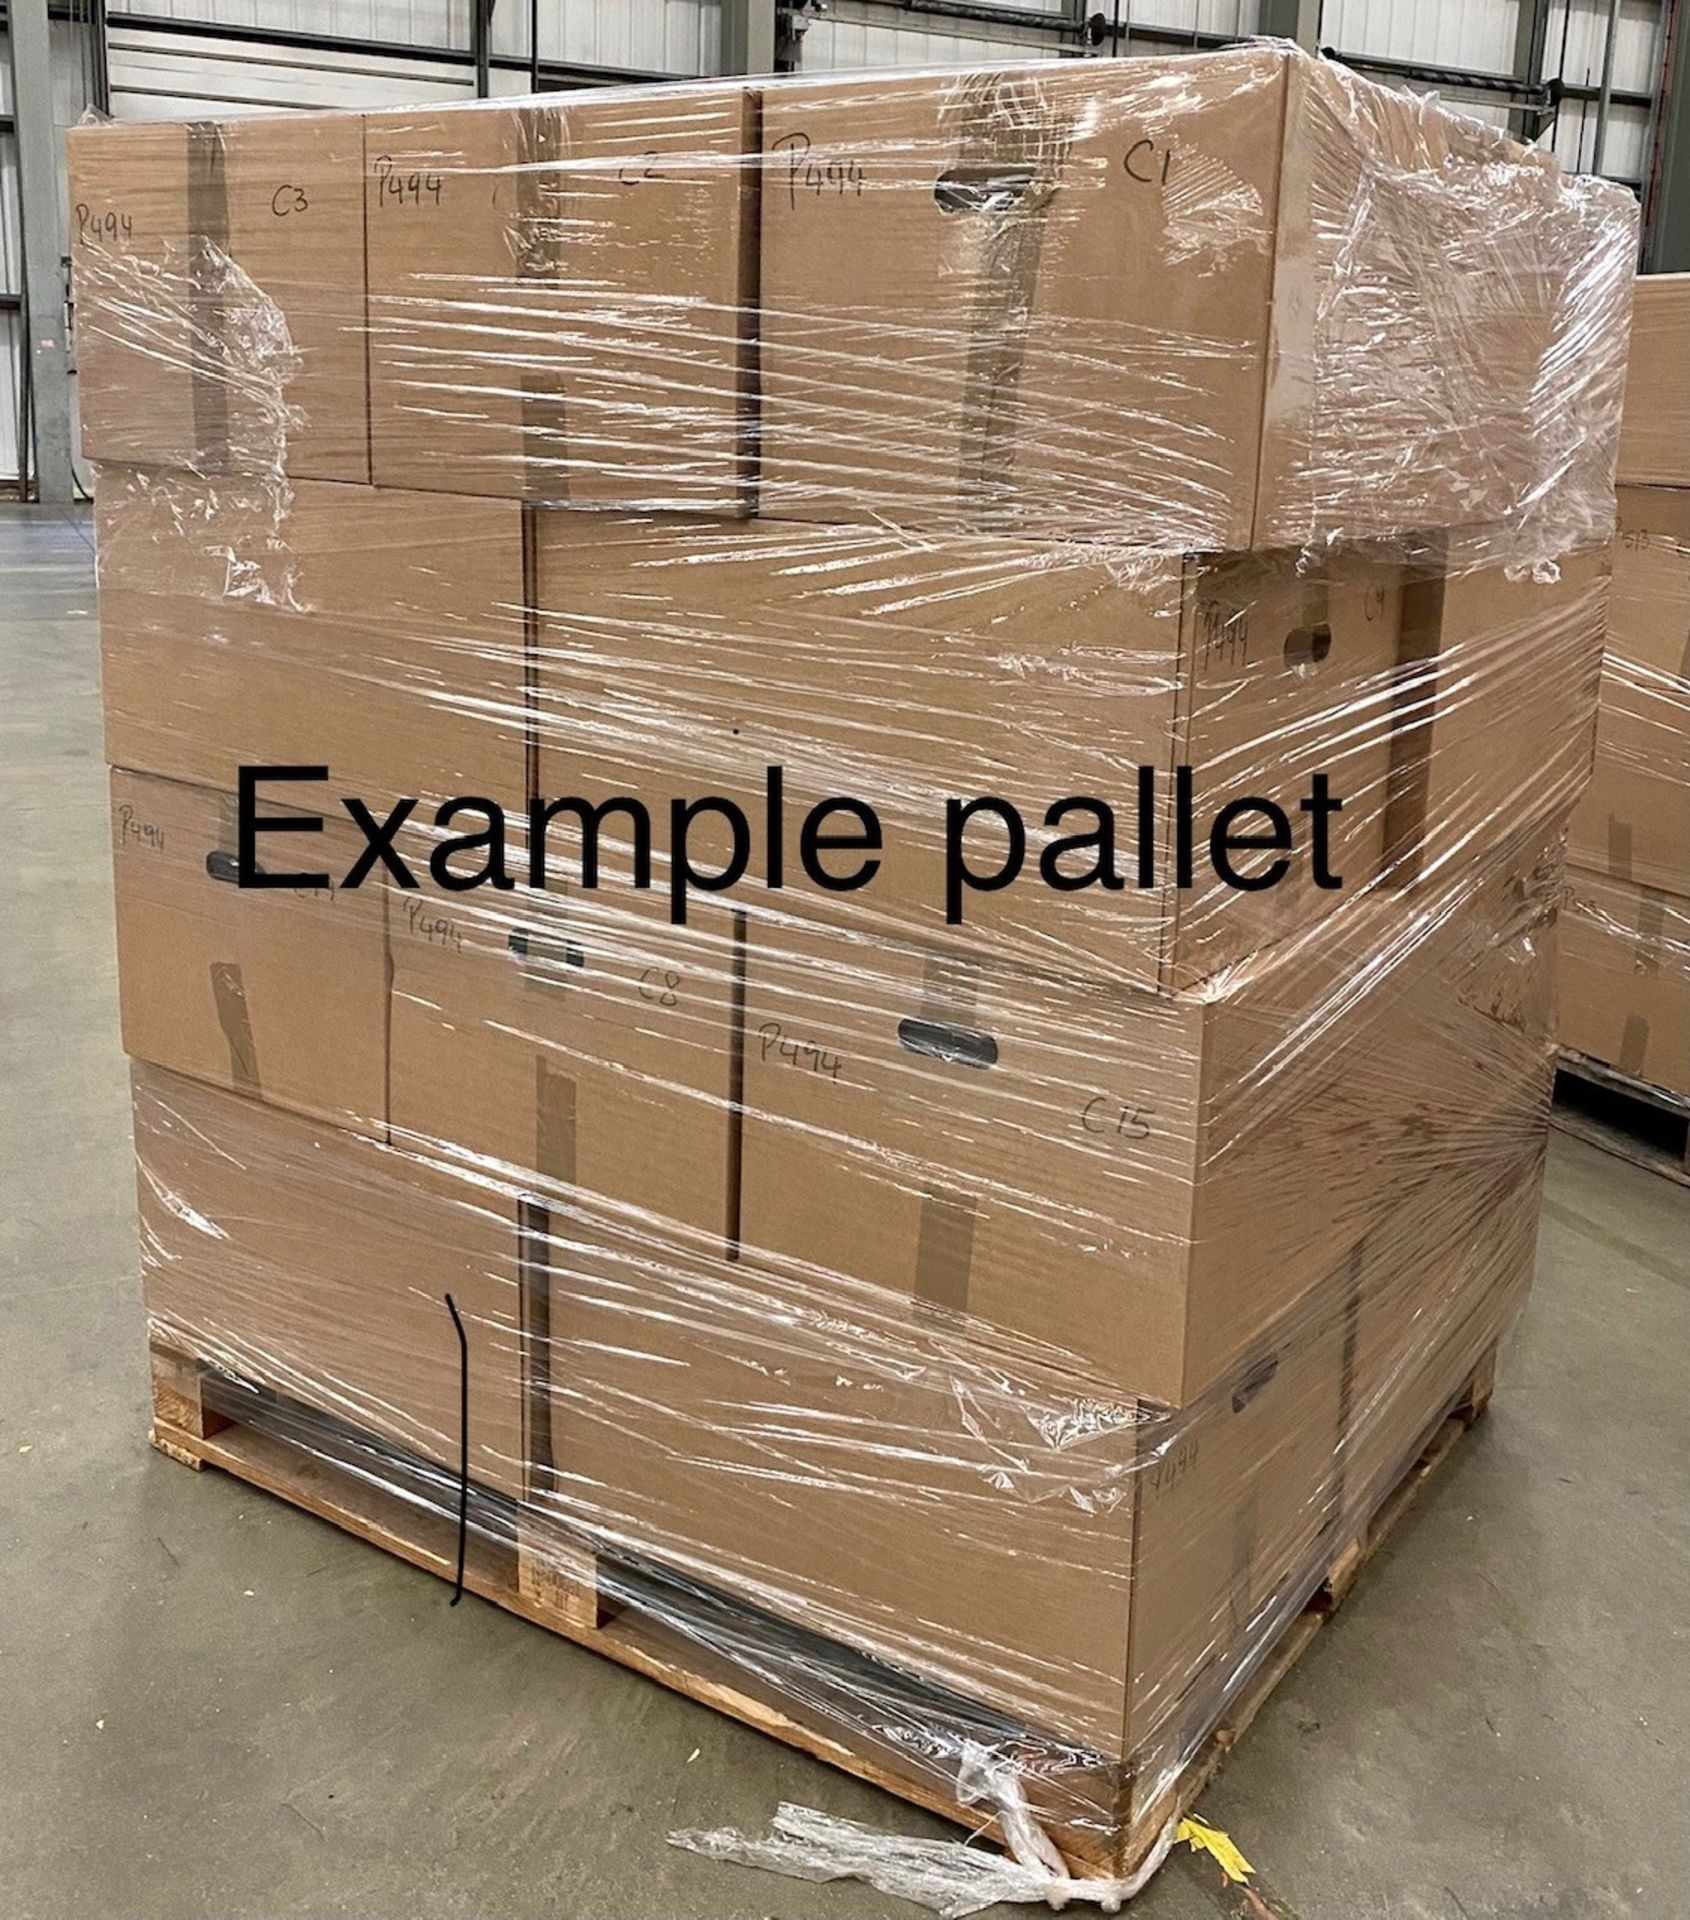 1 x mixed pallet = 94 items of Grade A M&S Menswear Clothing. Total RRP £2574 - Image 13 of 13